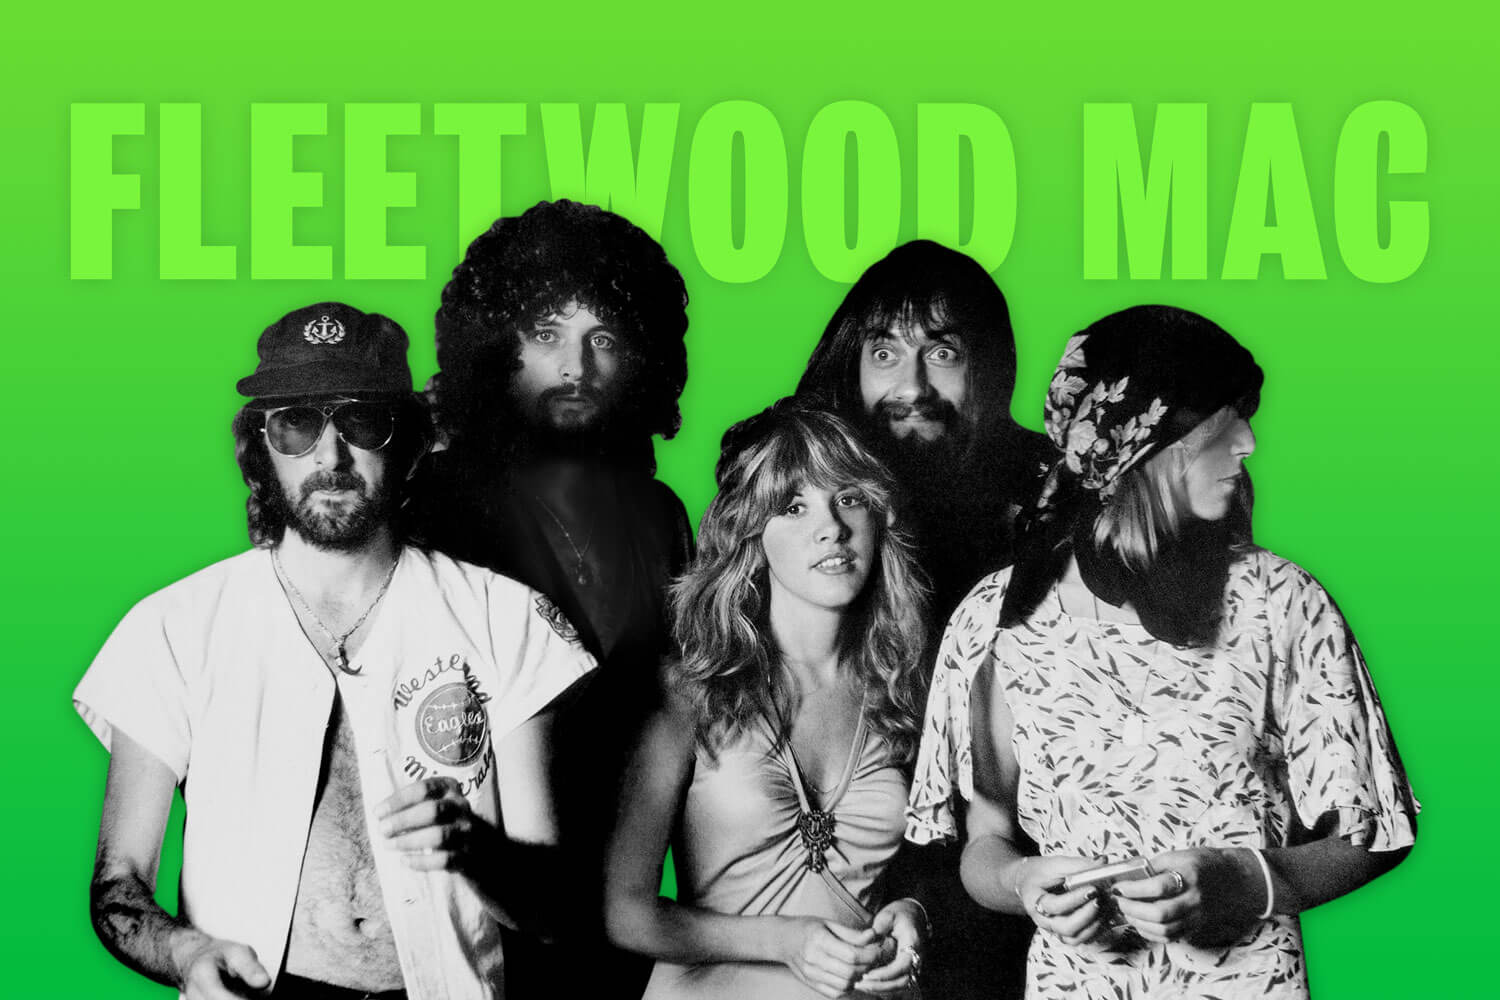 Shop Fleetwood Mac products